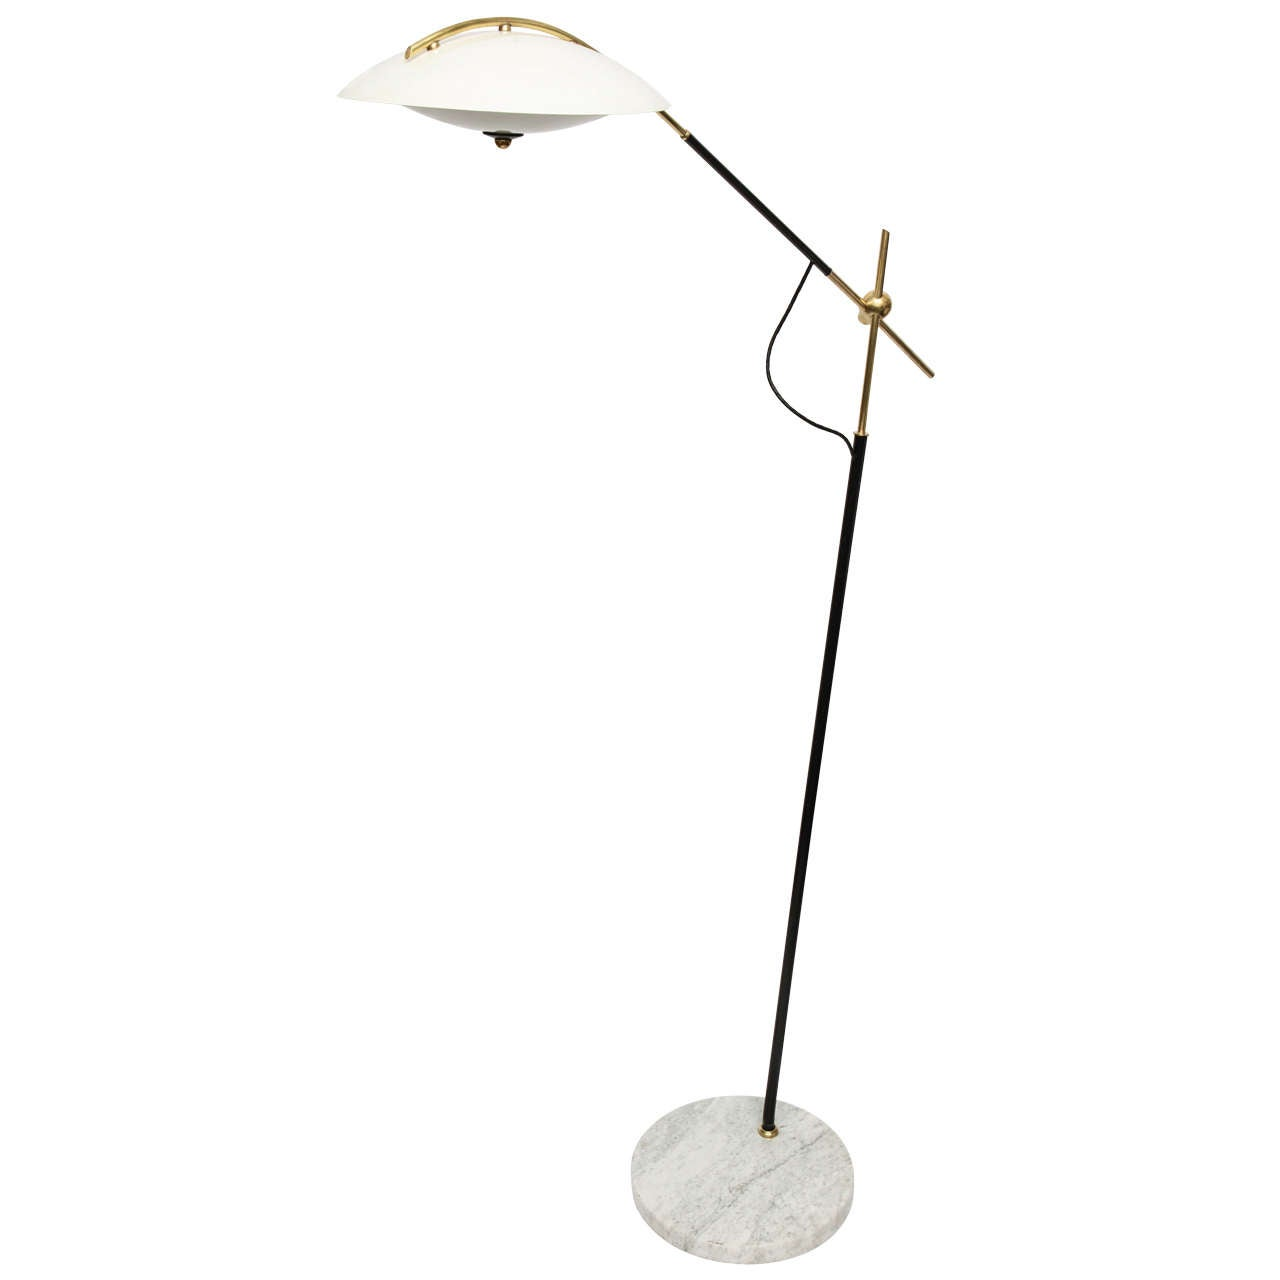 A 1950's Italian Articulated Floor Lamp Attributed to Stilnovo at ...